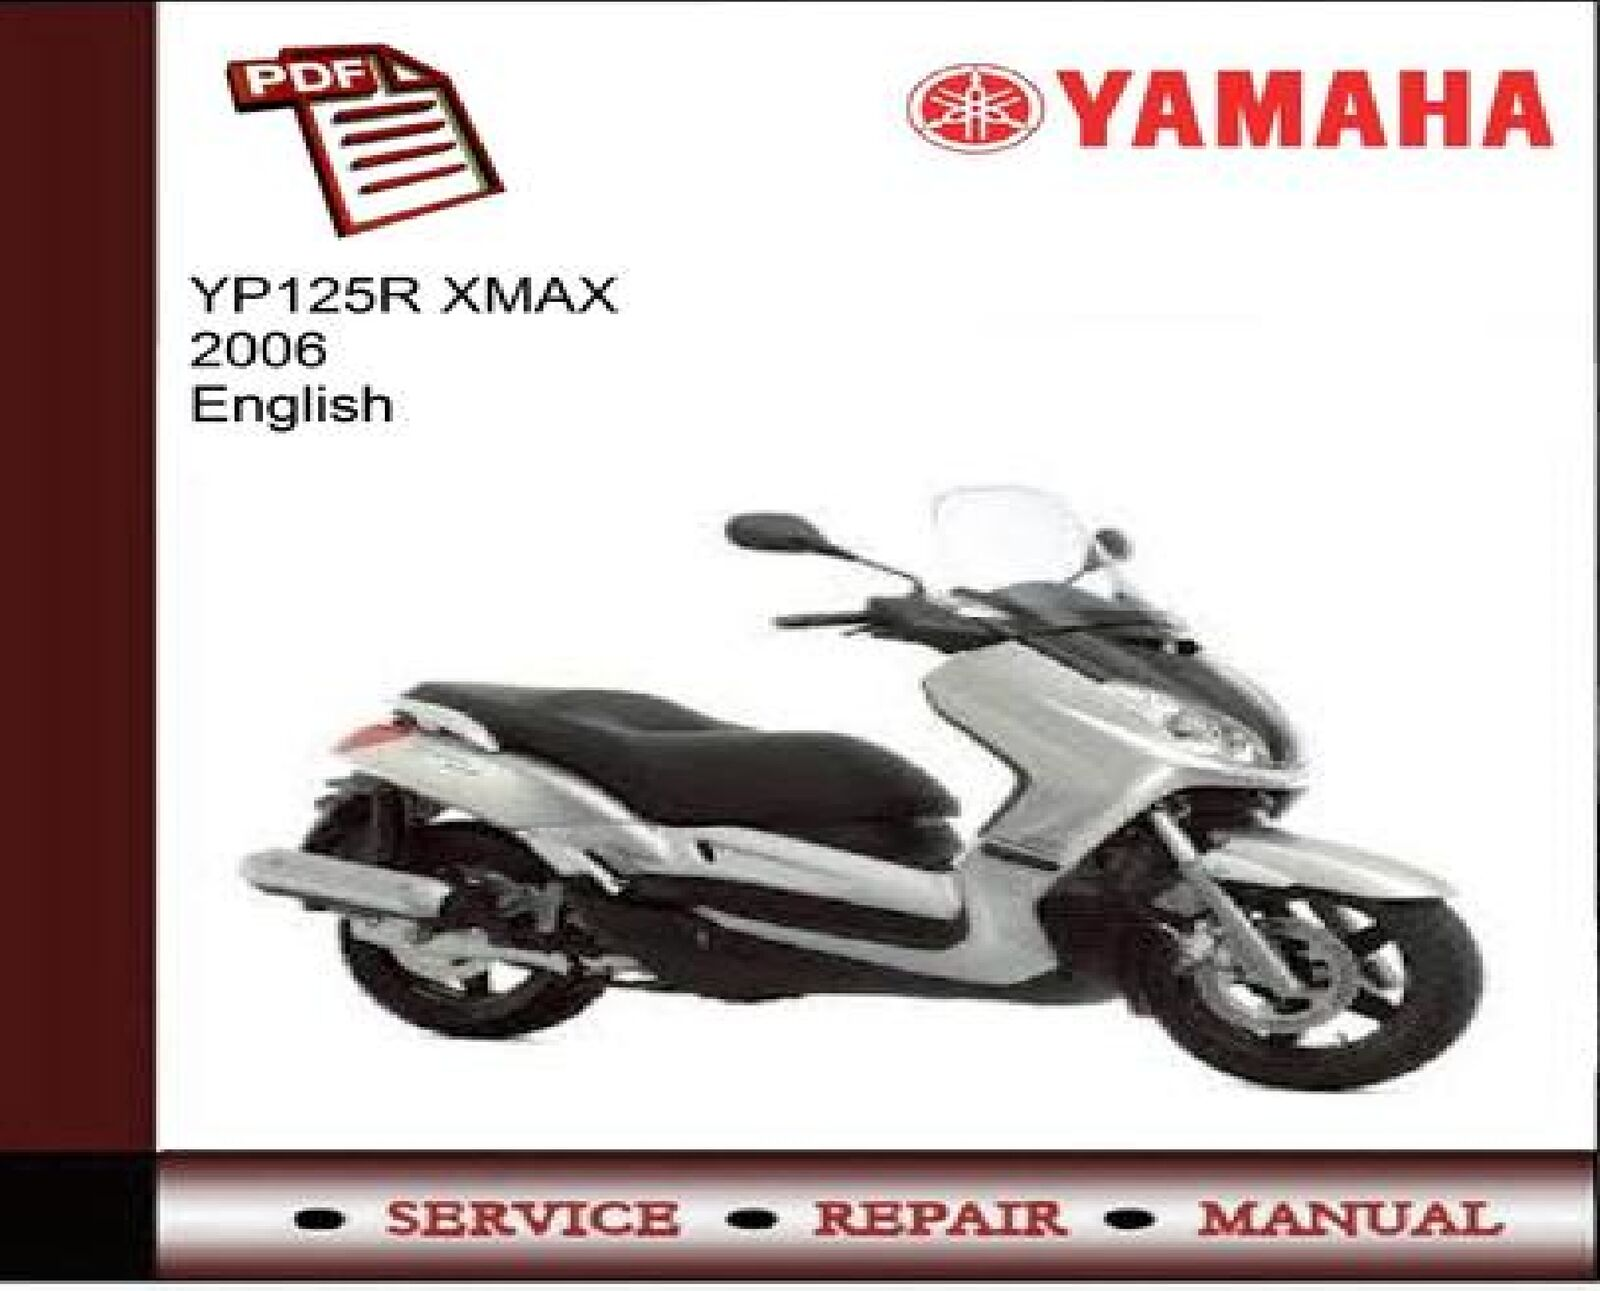 Yamaha YP125R XMAX 2006 Service Repair Workshop Manual 1 of 1FREE Shipping  ...